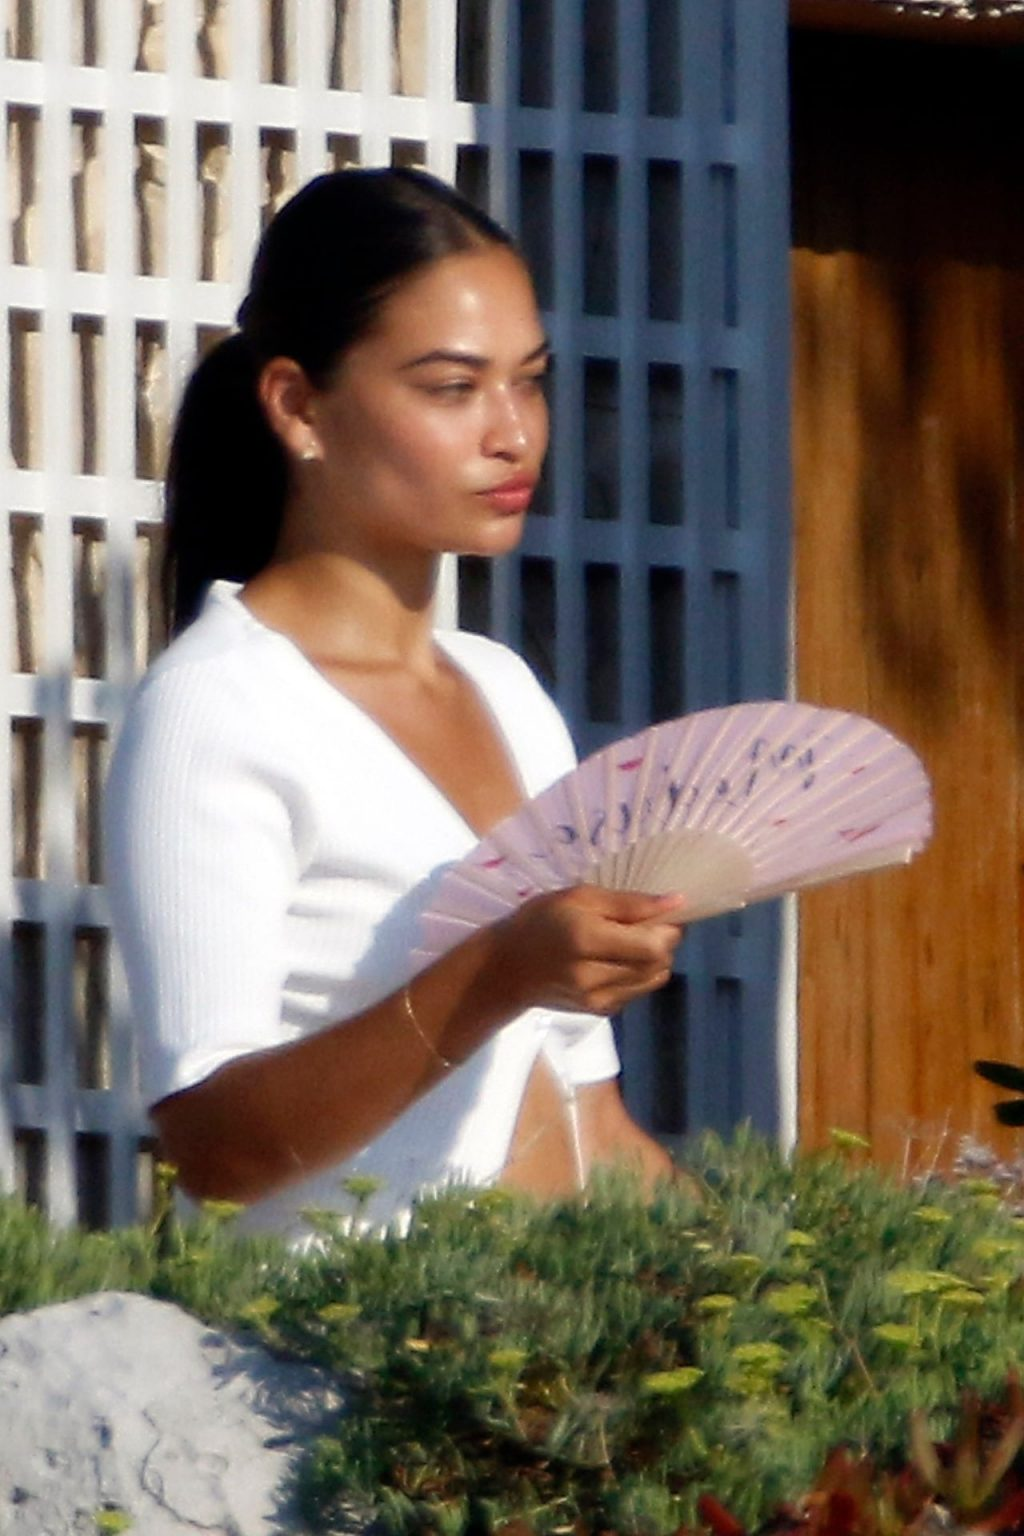 Braless Shanina Shaik Enjoys a Sunny Day with Her Friends (150 Photos)